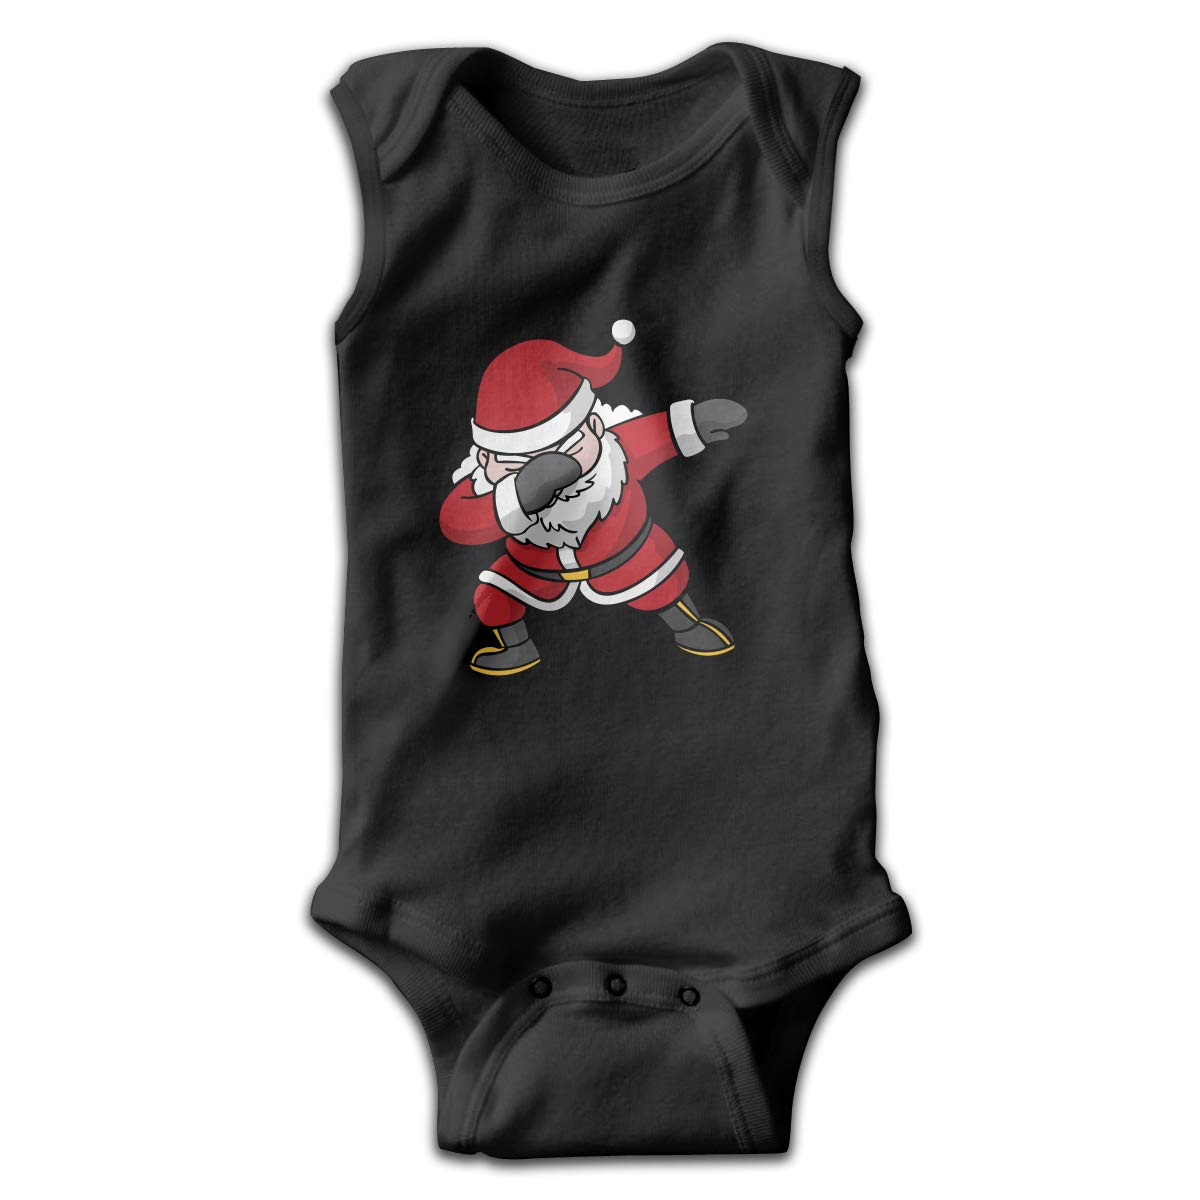 Dfenere Hip Hop Santa Newborn Baby No Sleeve Bodysuit Romper Infant Summer Clothing Black